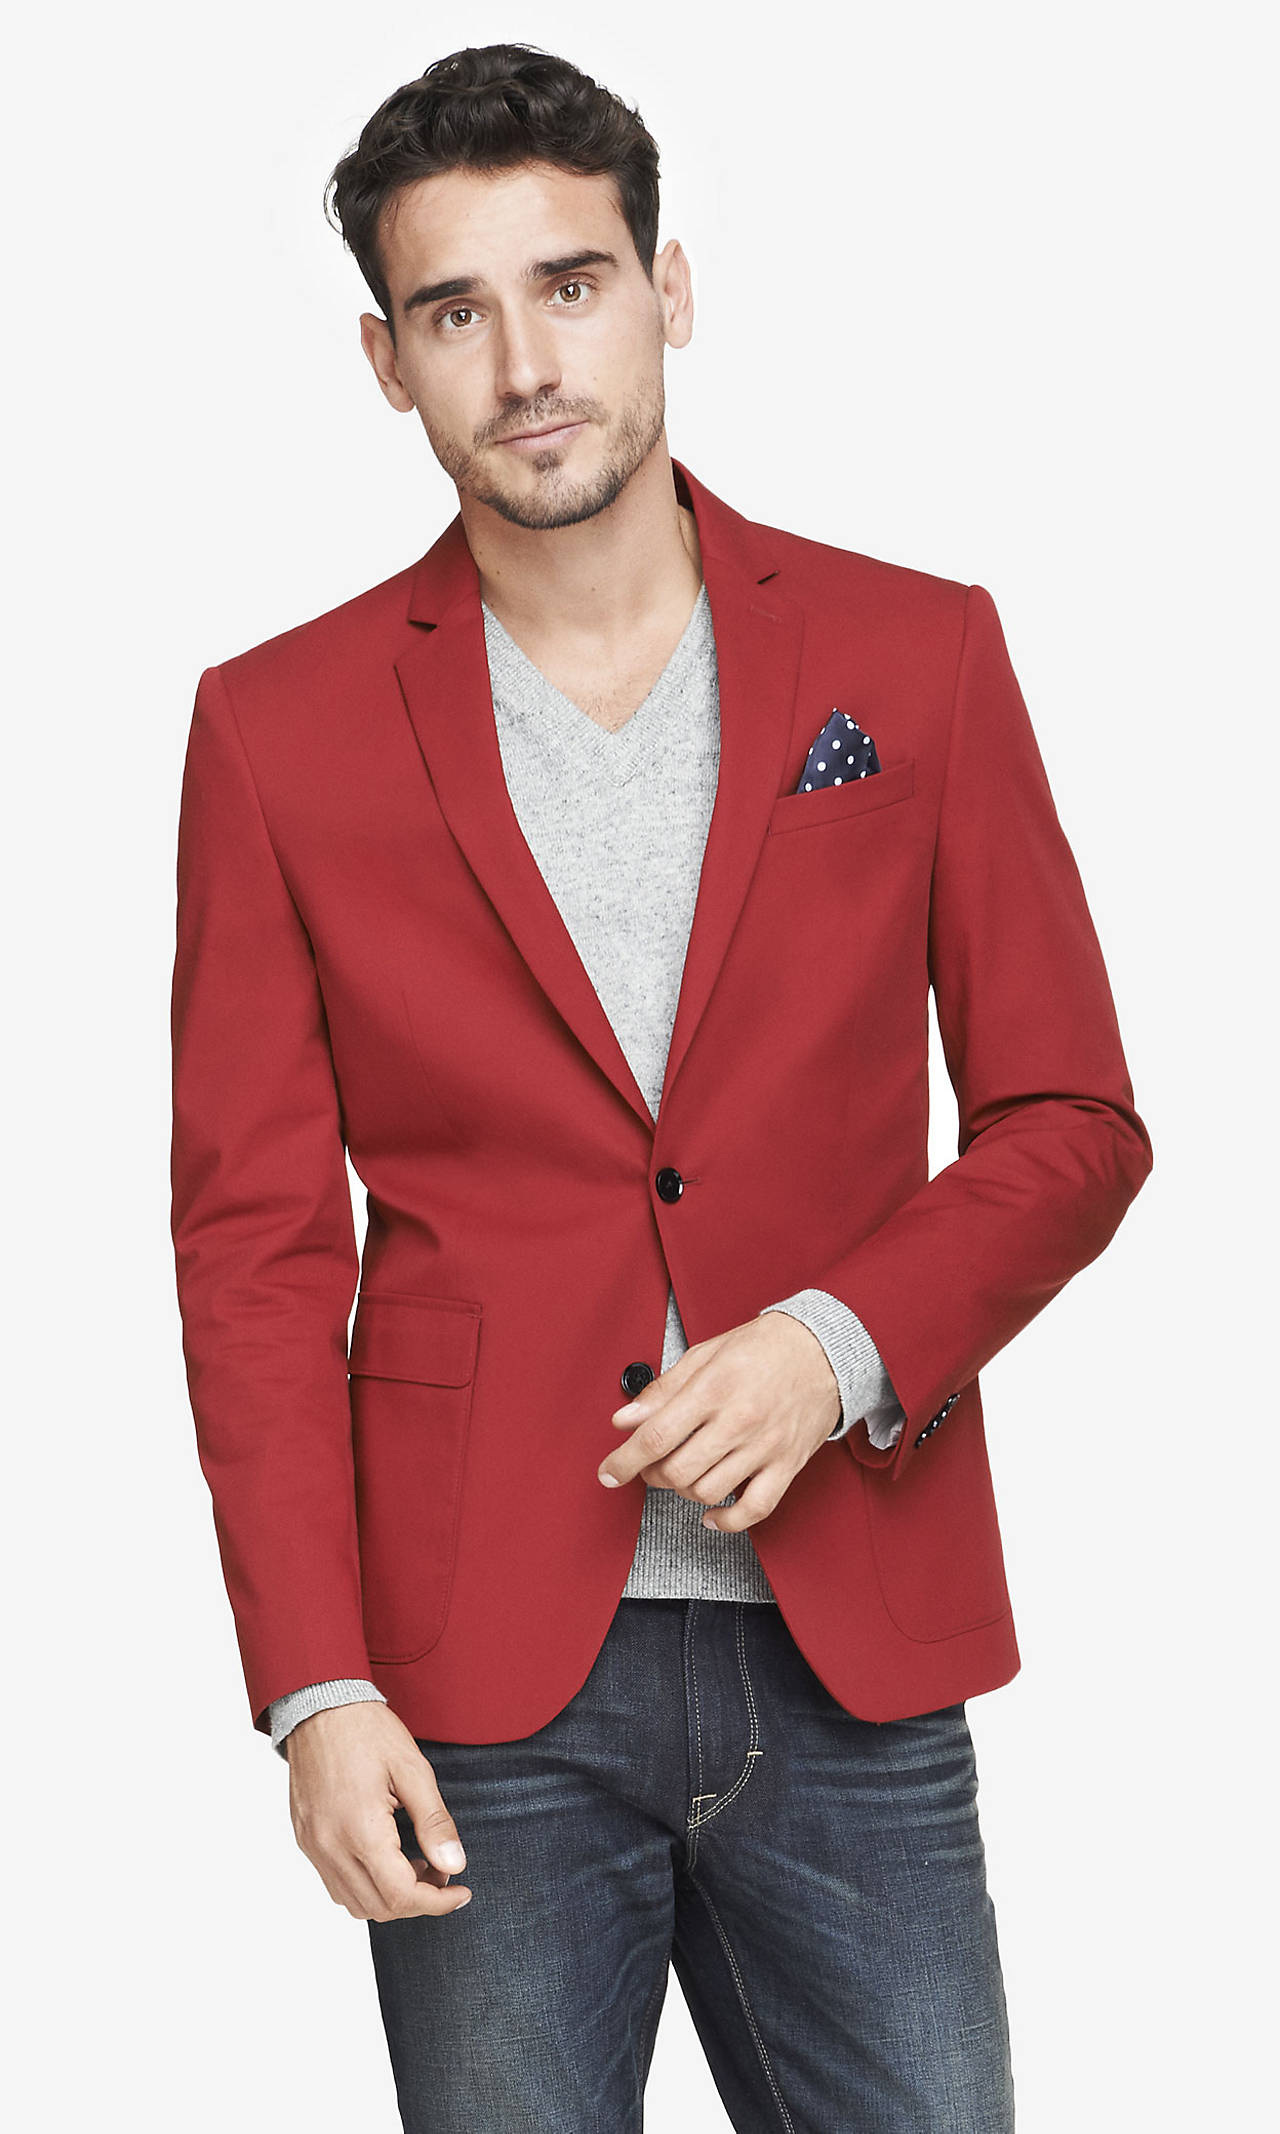 Stuccu: Best Deals on blazers men. Up To 70% offBest Offers · Exclusive Deals · Lowest Prices · Compare PricesTypes: Electronics, Toys, Fashion, Home Improvement, Power tools, Sports equipment.